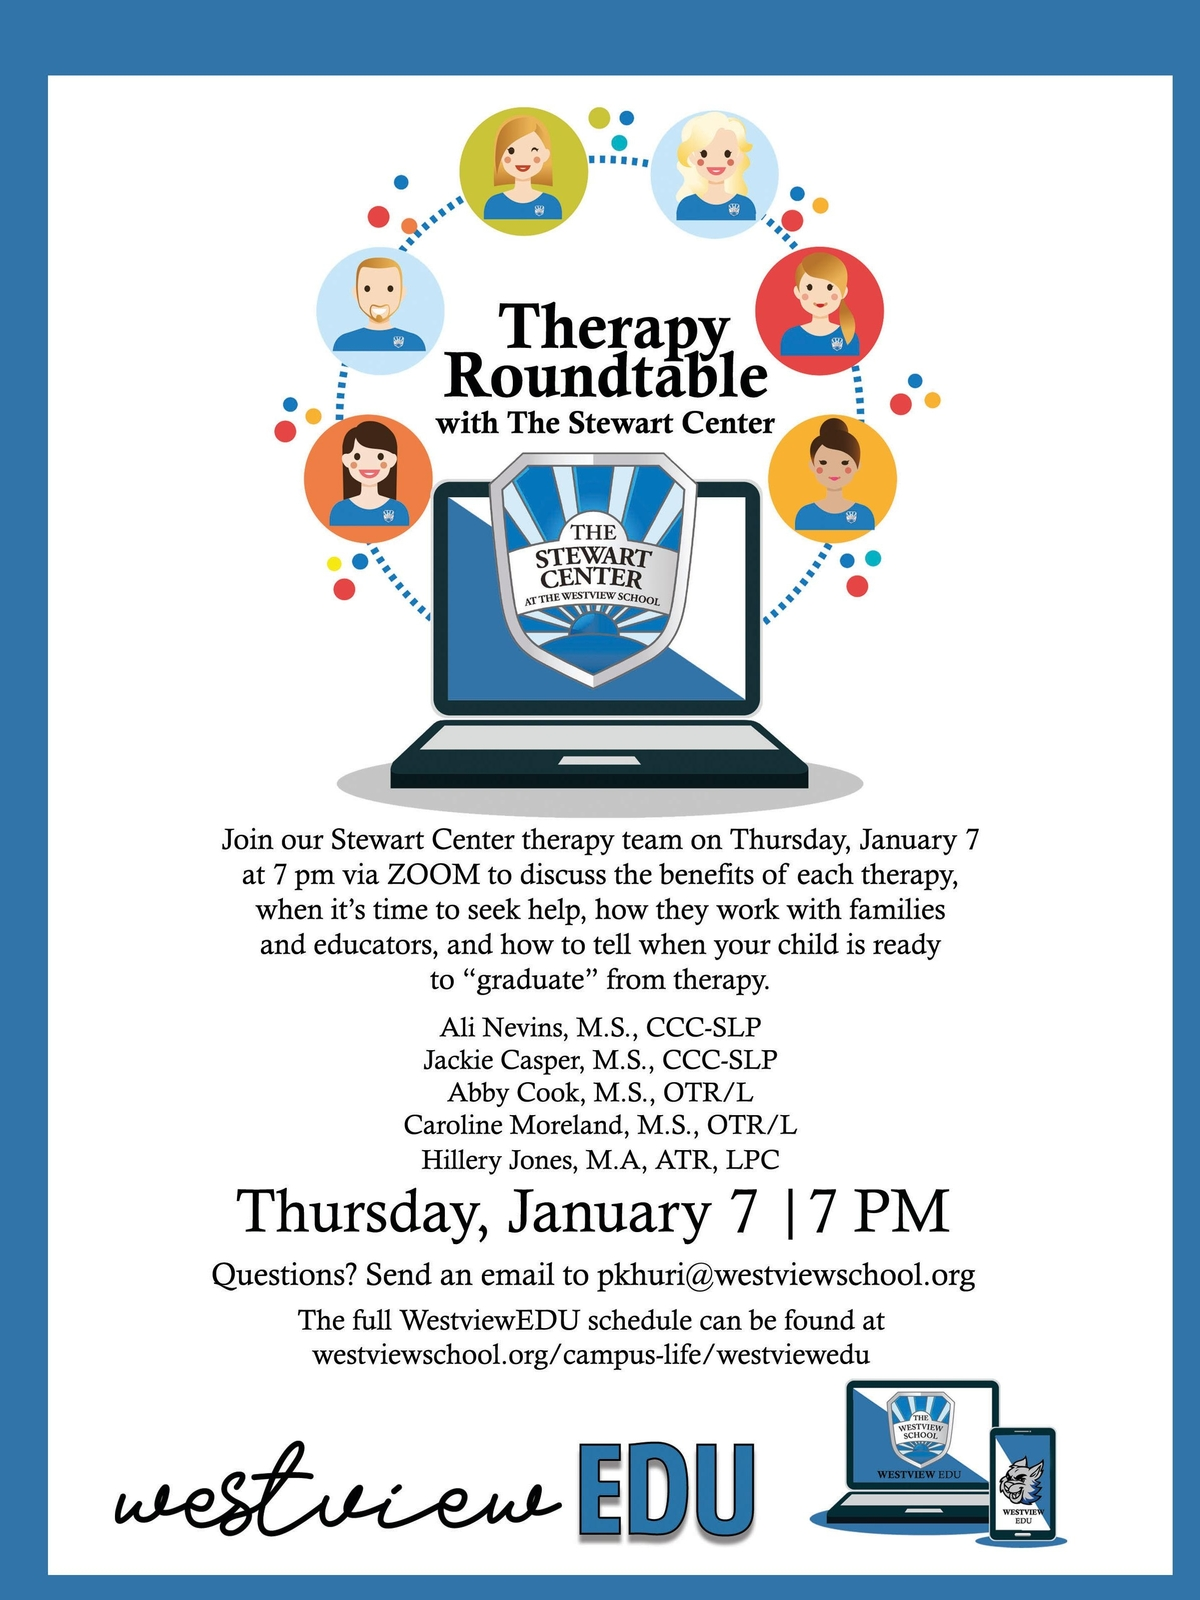 WESTVIEW EDU: Therapy Roundtable with The Stewart Center